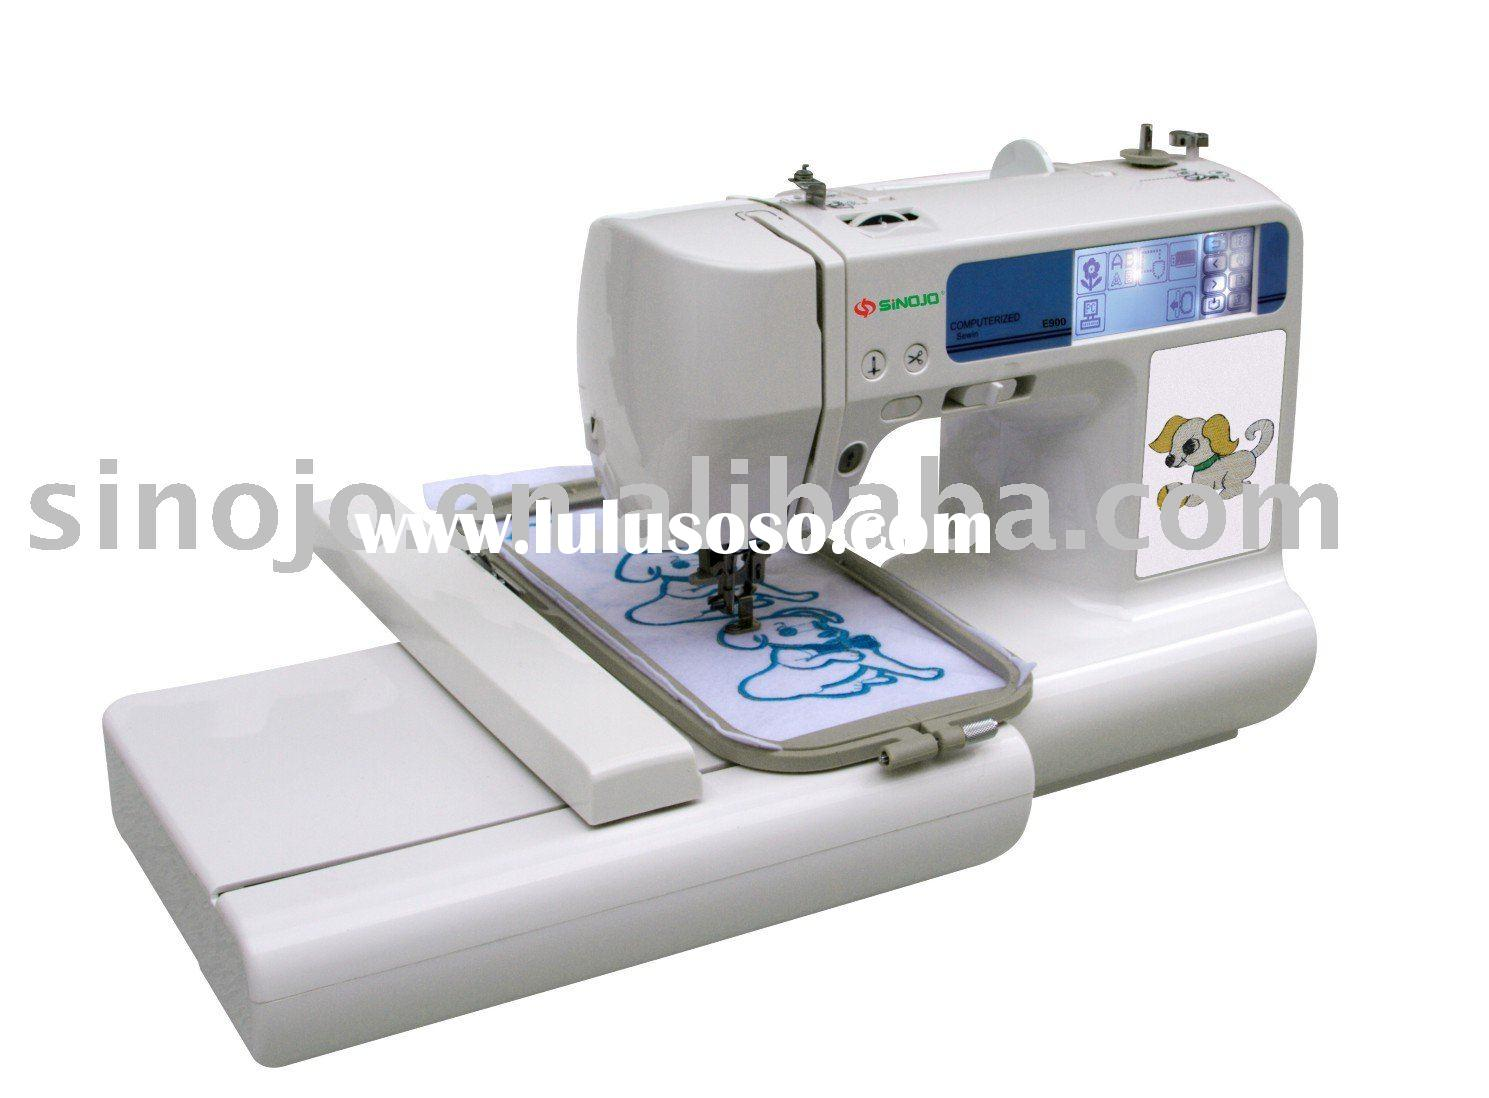 Used Domestic Embroidery Machine Used Domestic Embroidery Machine Manufacturers In LuLuSoSo.com ...